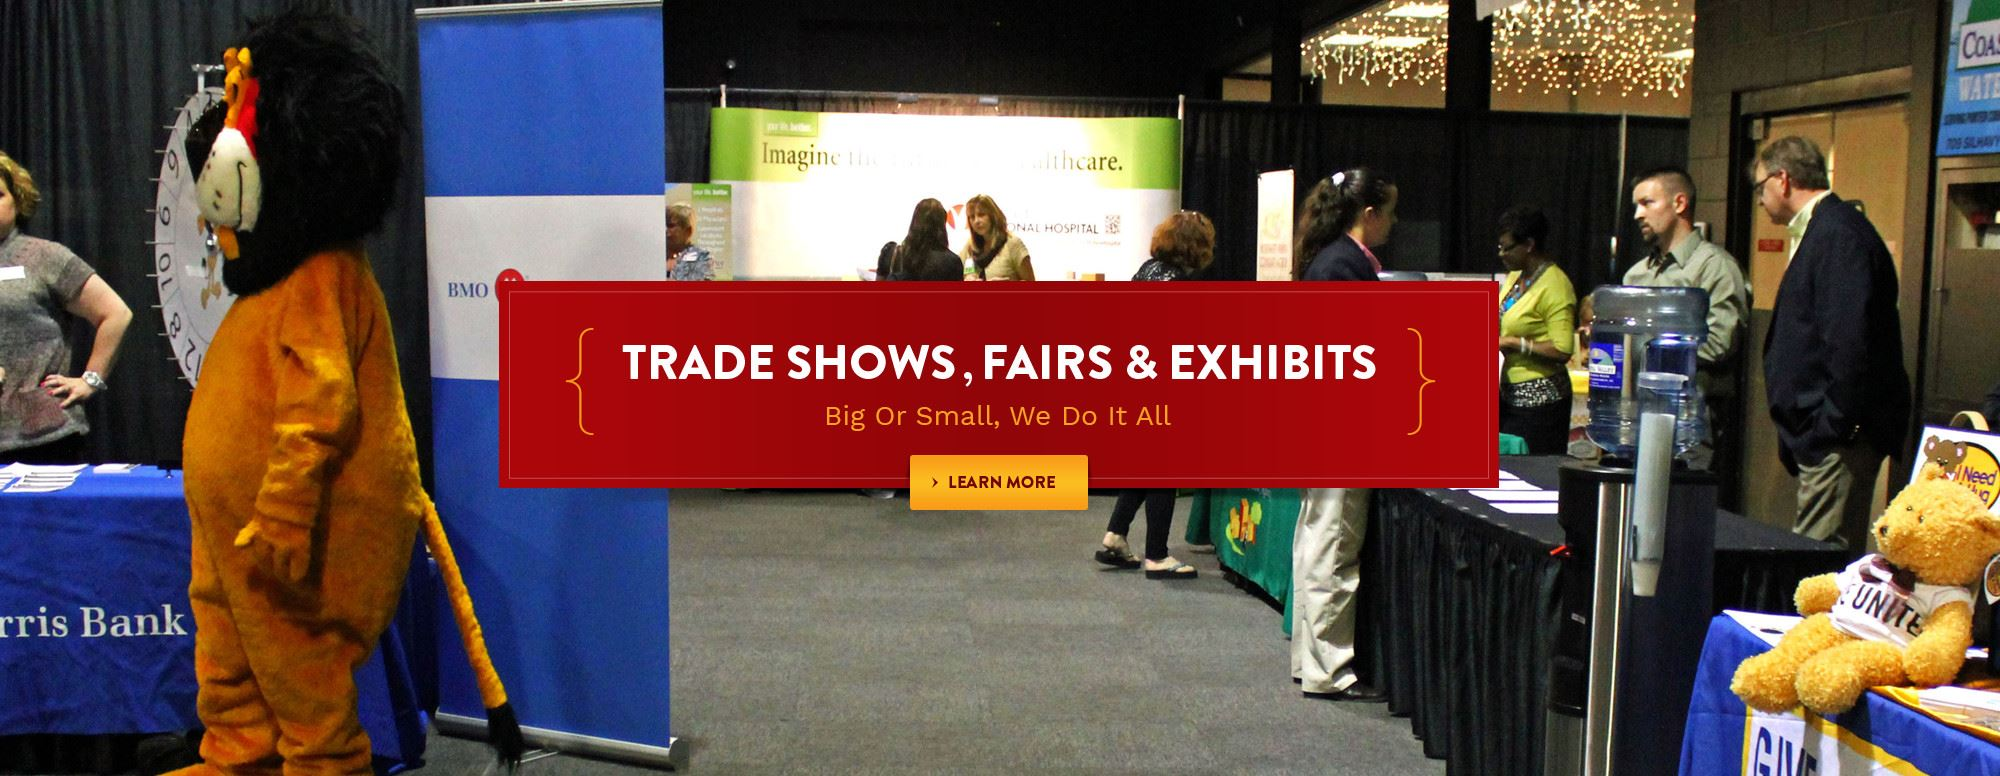 Trade Shows Fairs and Exhibits